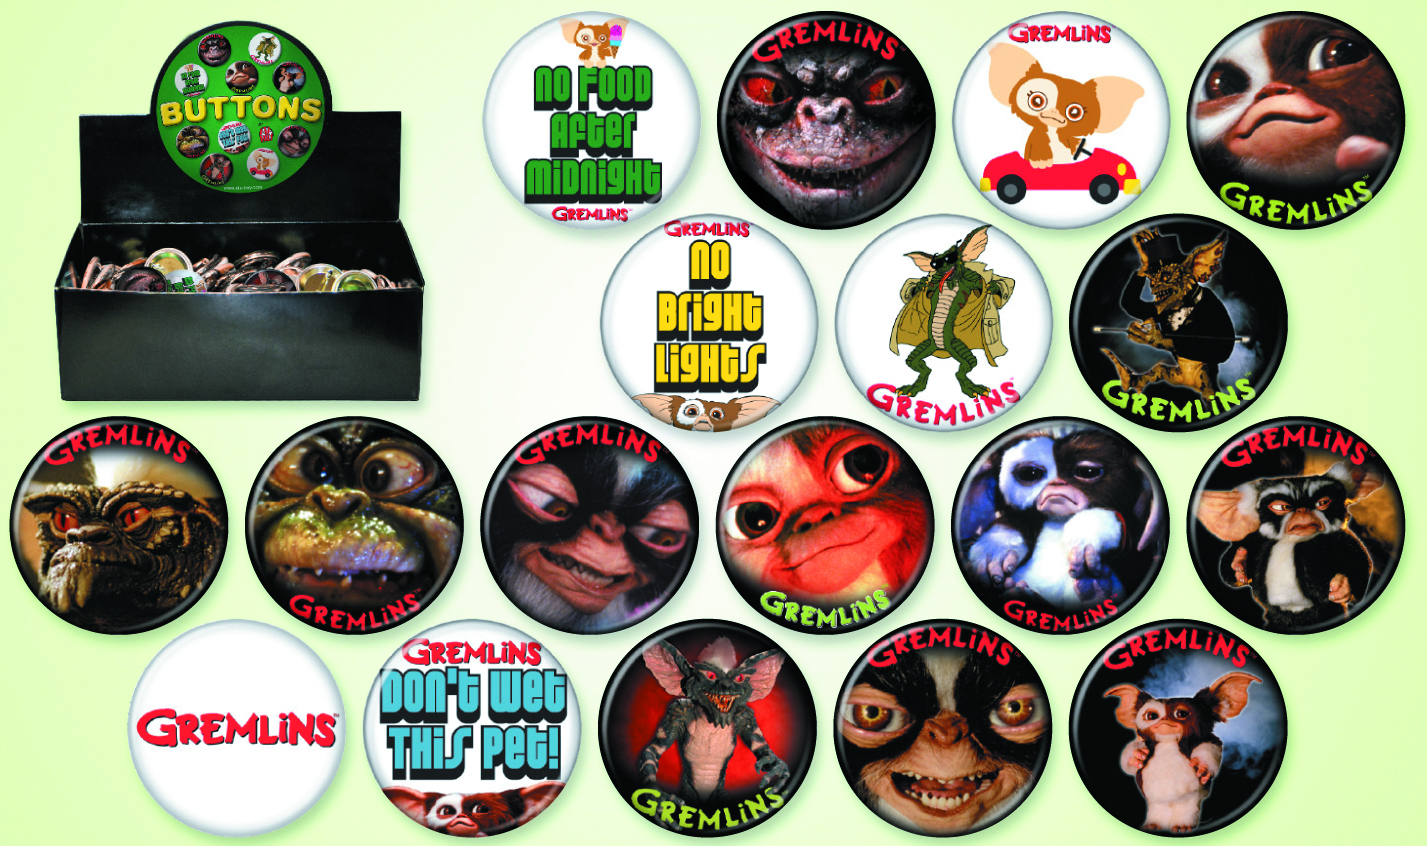 GREMLINS 144 PC BUTTON ASST